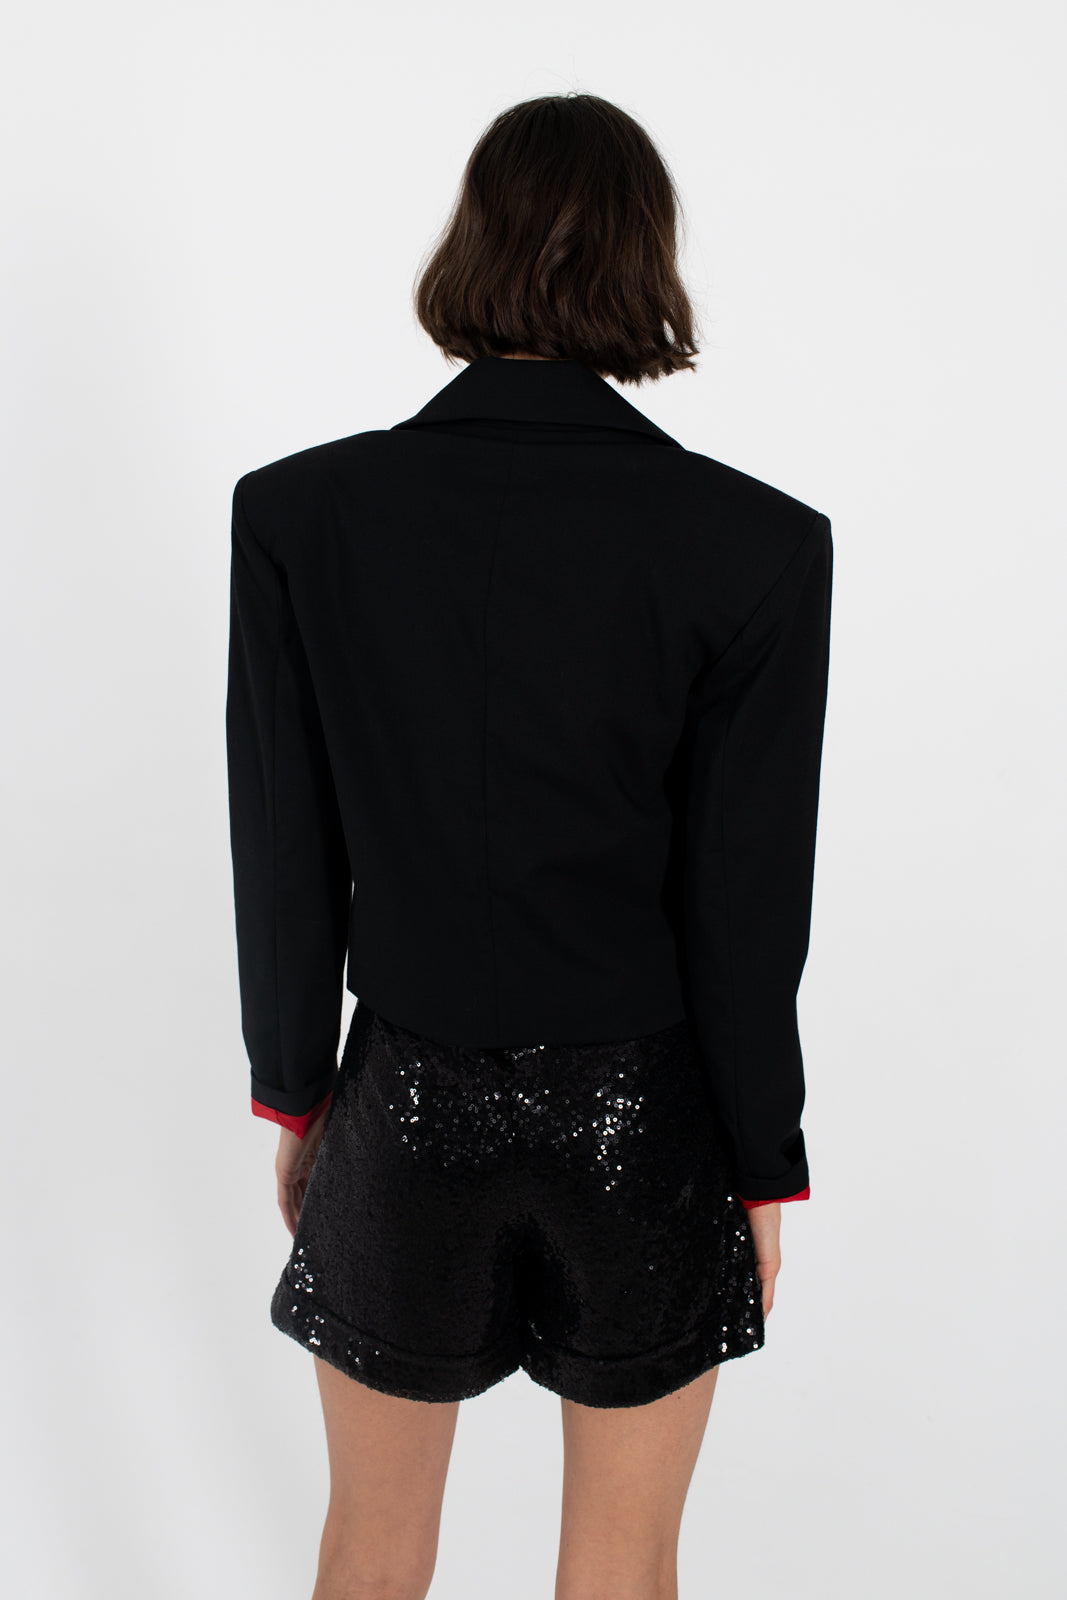 1980-sequin-shorts-le-slap-shiny-lookbook-party-black.jpg